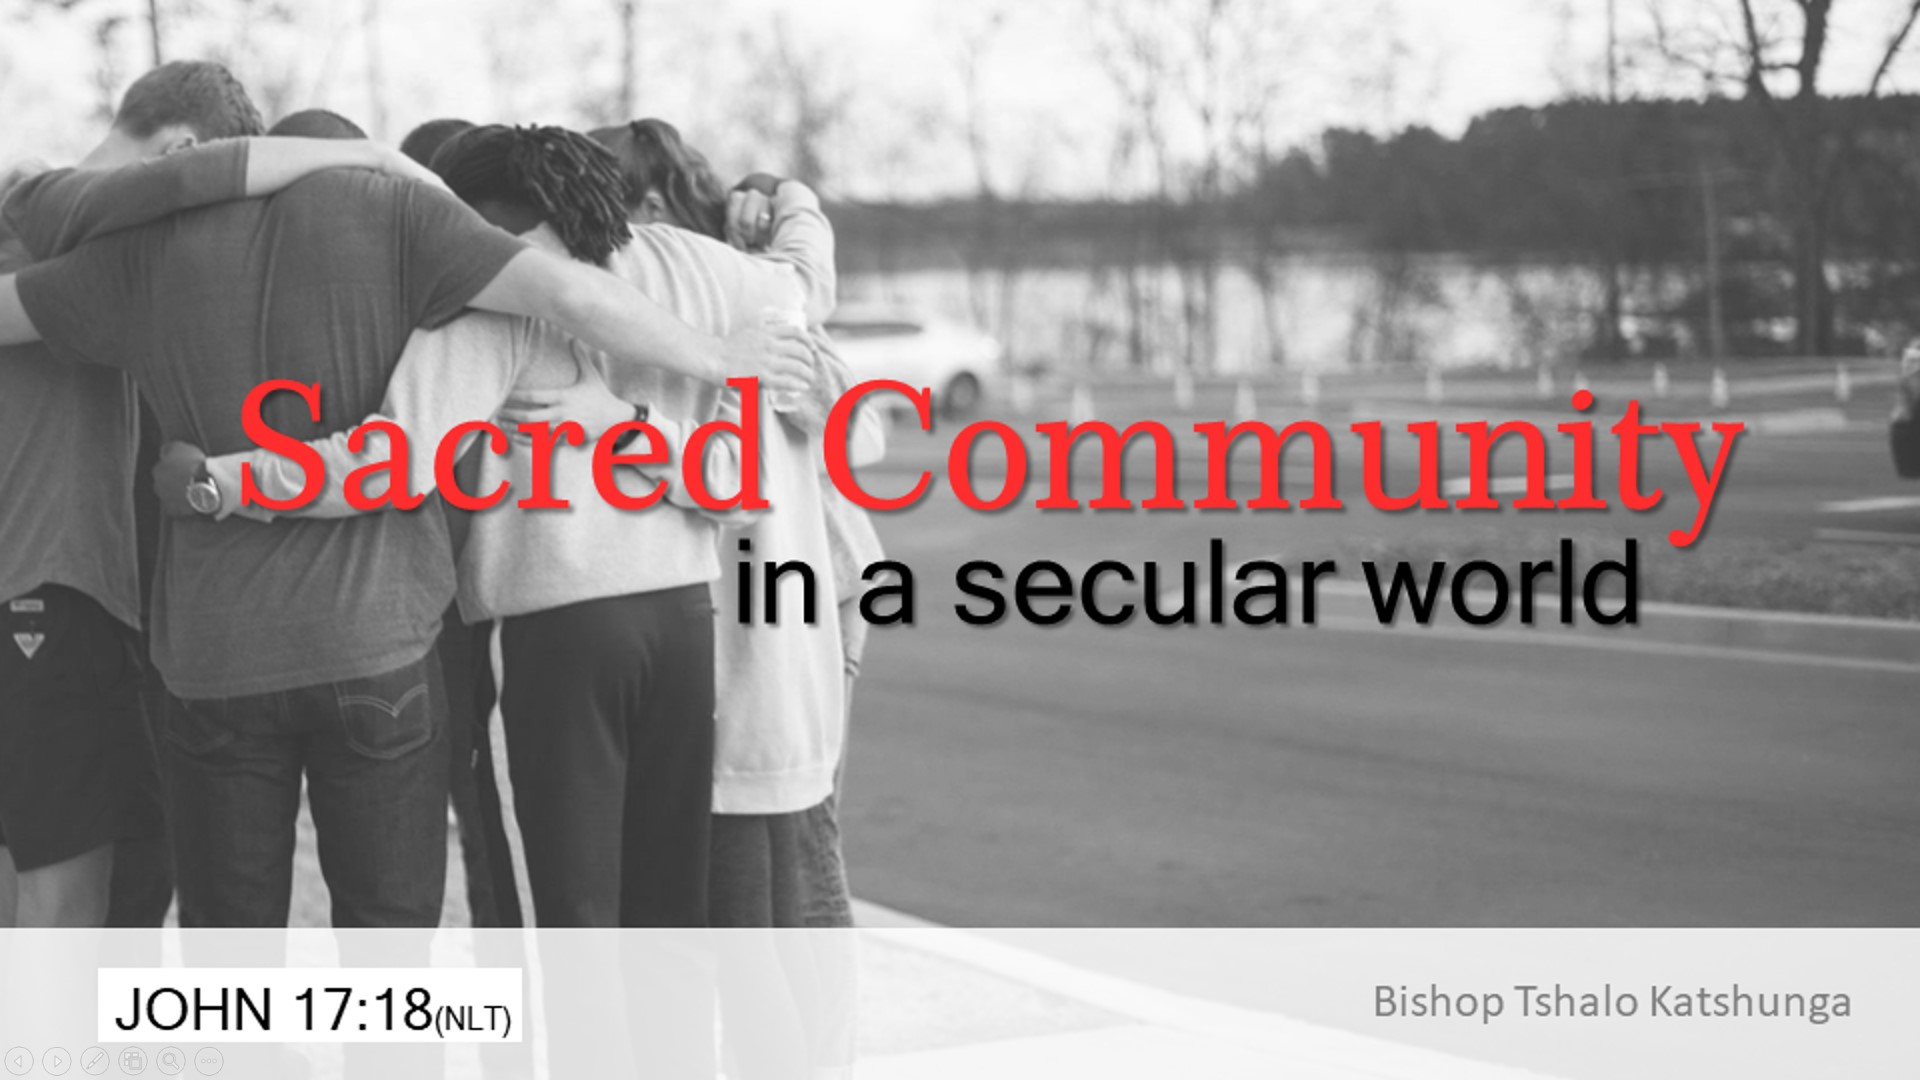 The Sacred Community in a Secular World